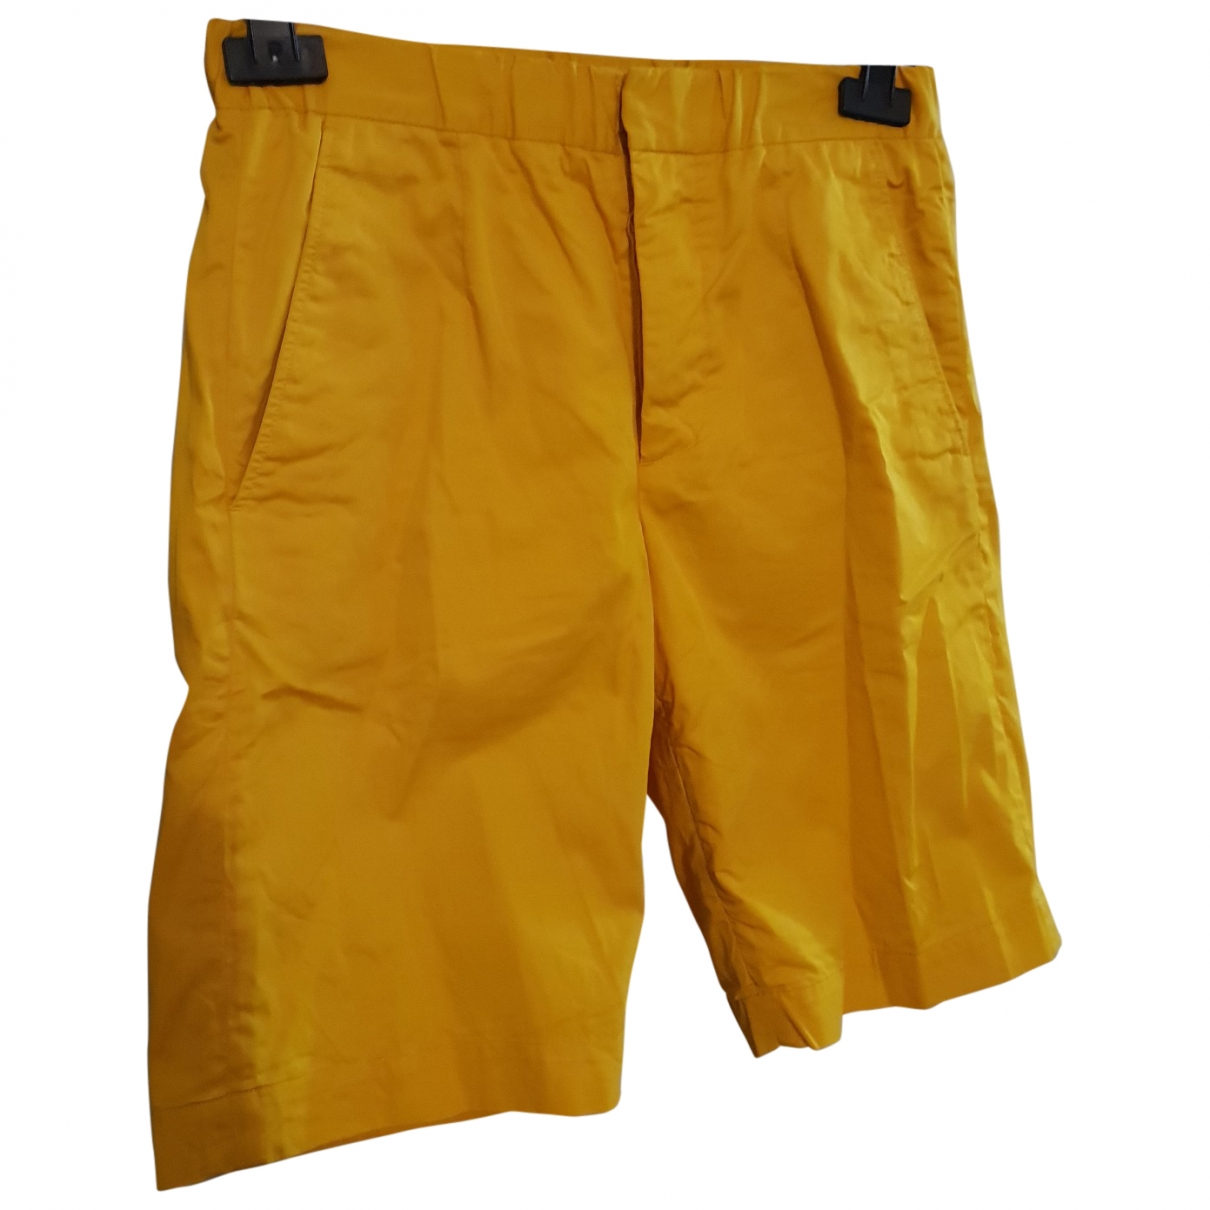 Marni For H&m \N Yellow Cotton Shorts for Men 44 IT